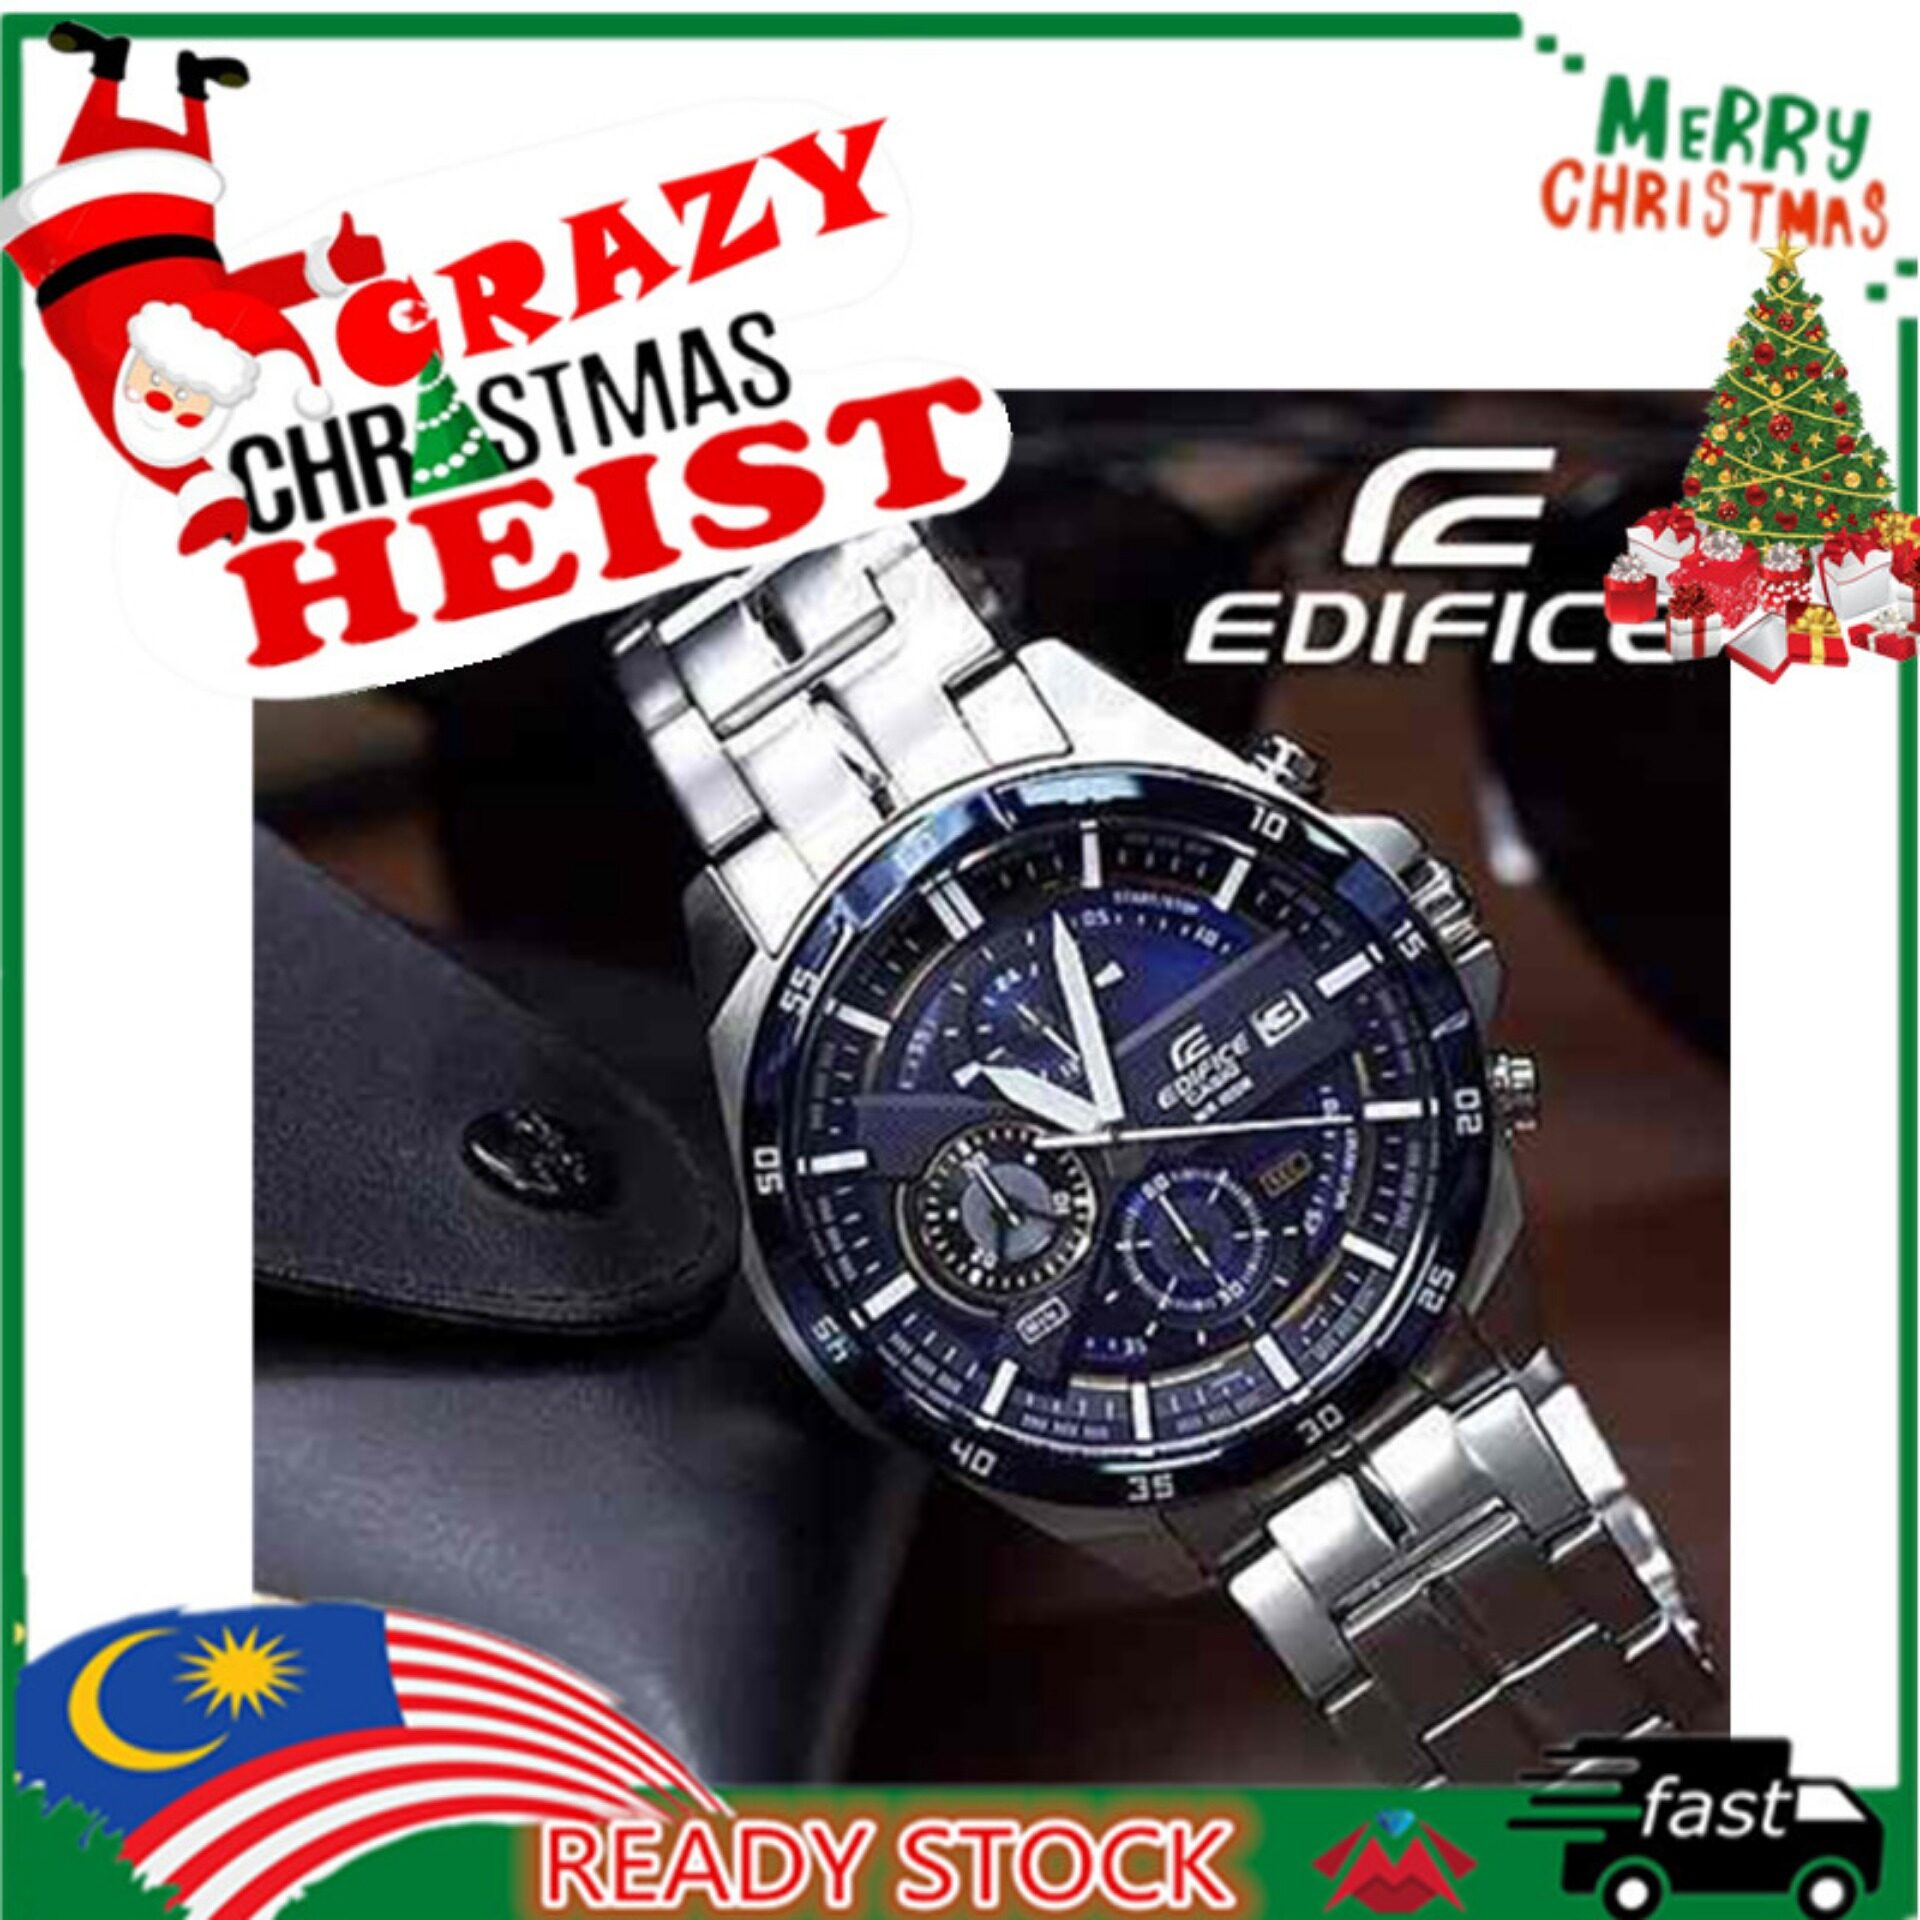 Casio_Edifice EFR 556 series All Function Fashion Leather / Stainless Men Steel Watch Malaysia